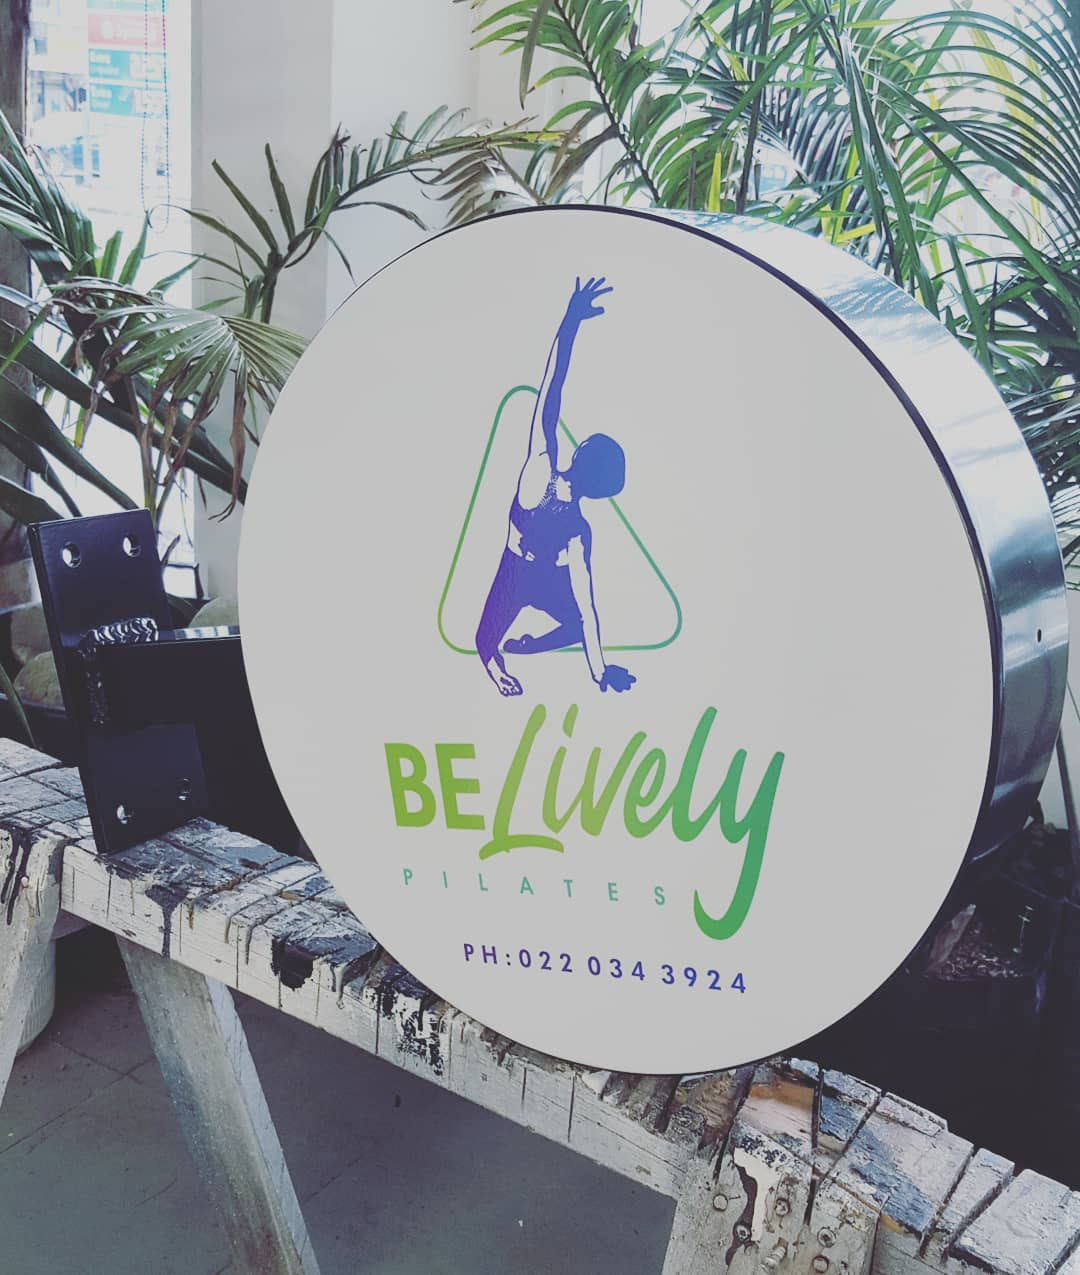 BeLivelyPilates